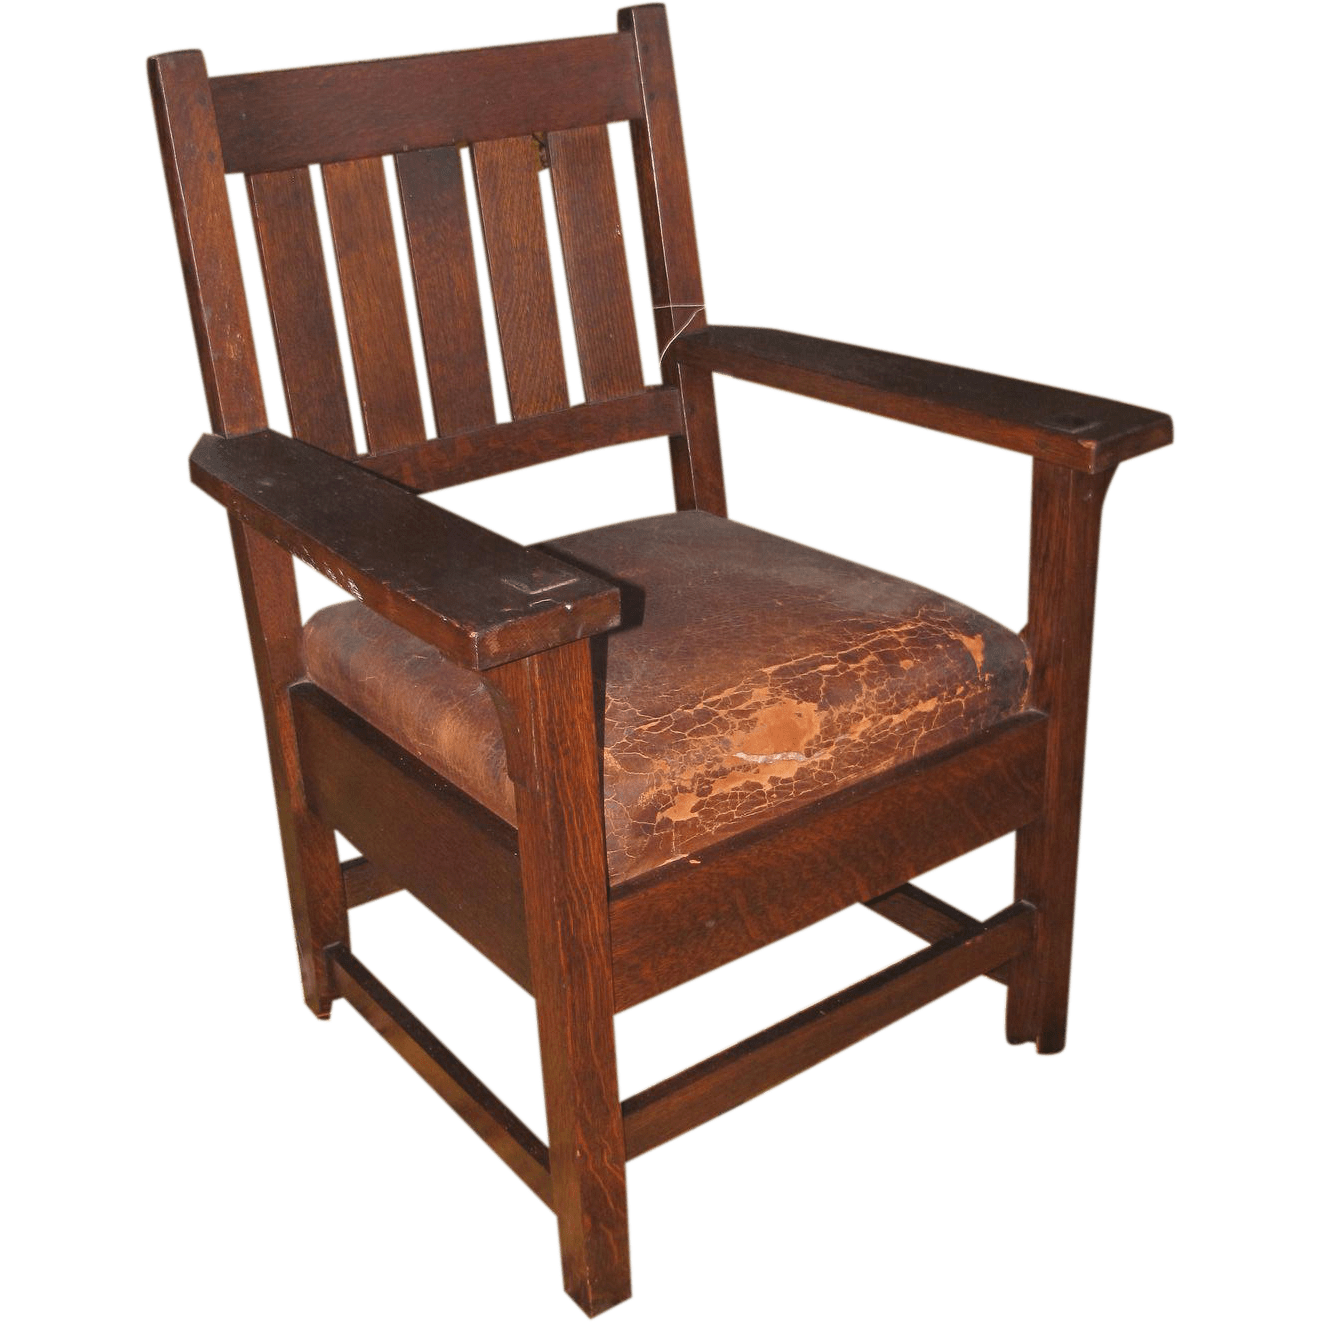 Stickley Chair Antique Early Gustav Stickley Arm Chair W2616 From Antique